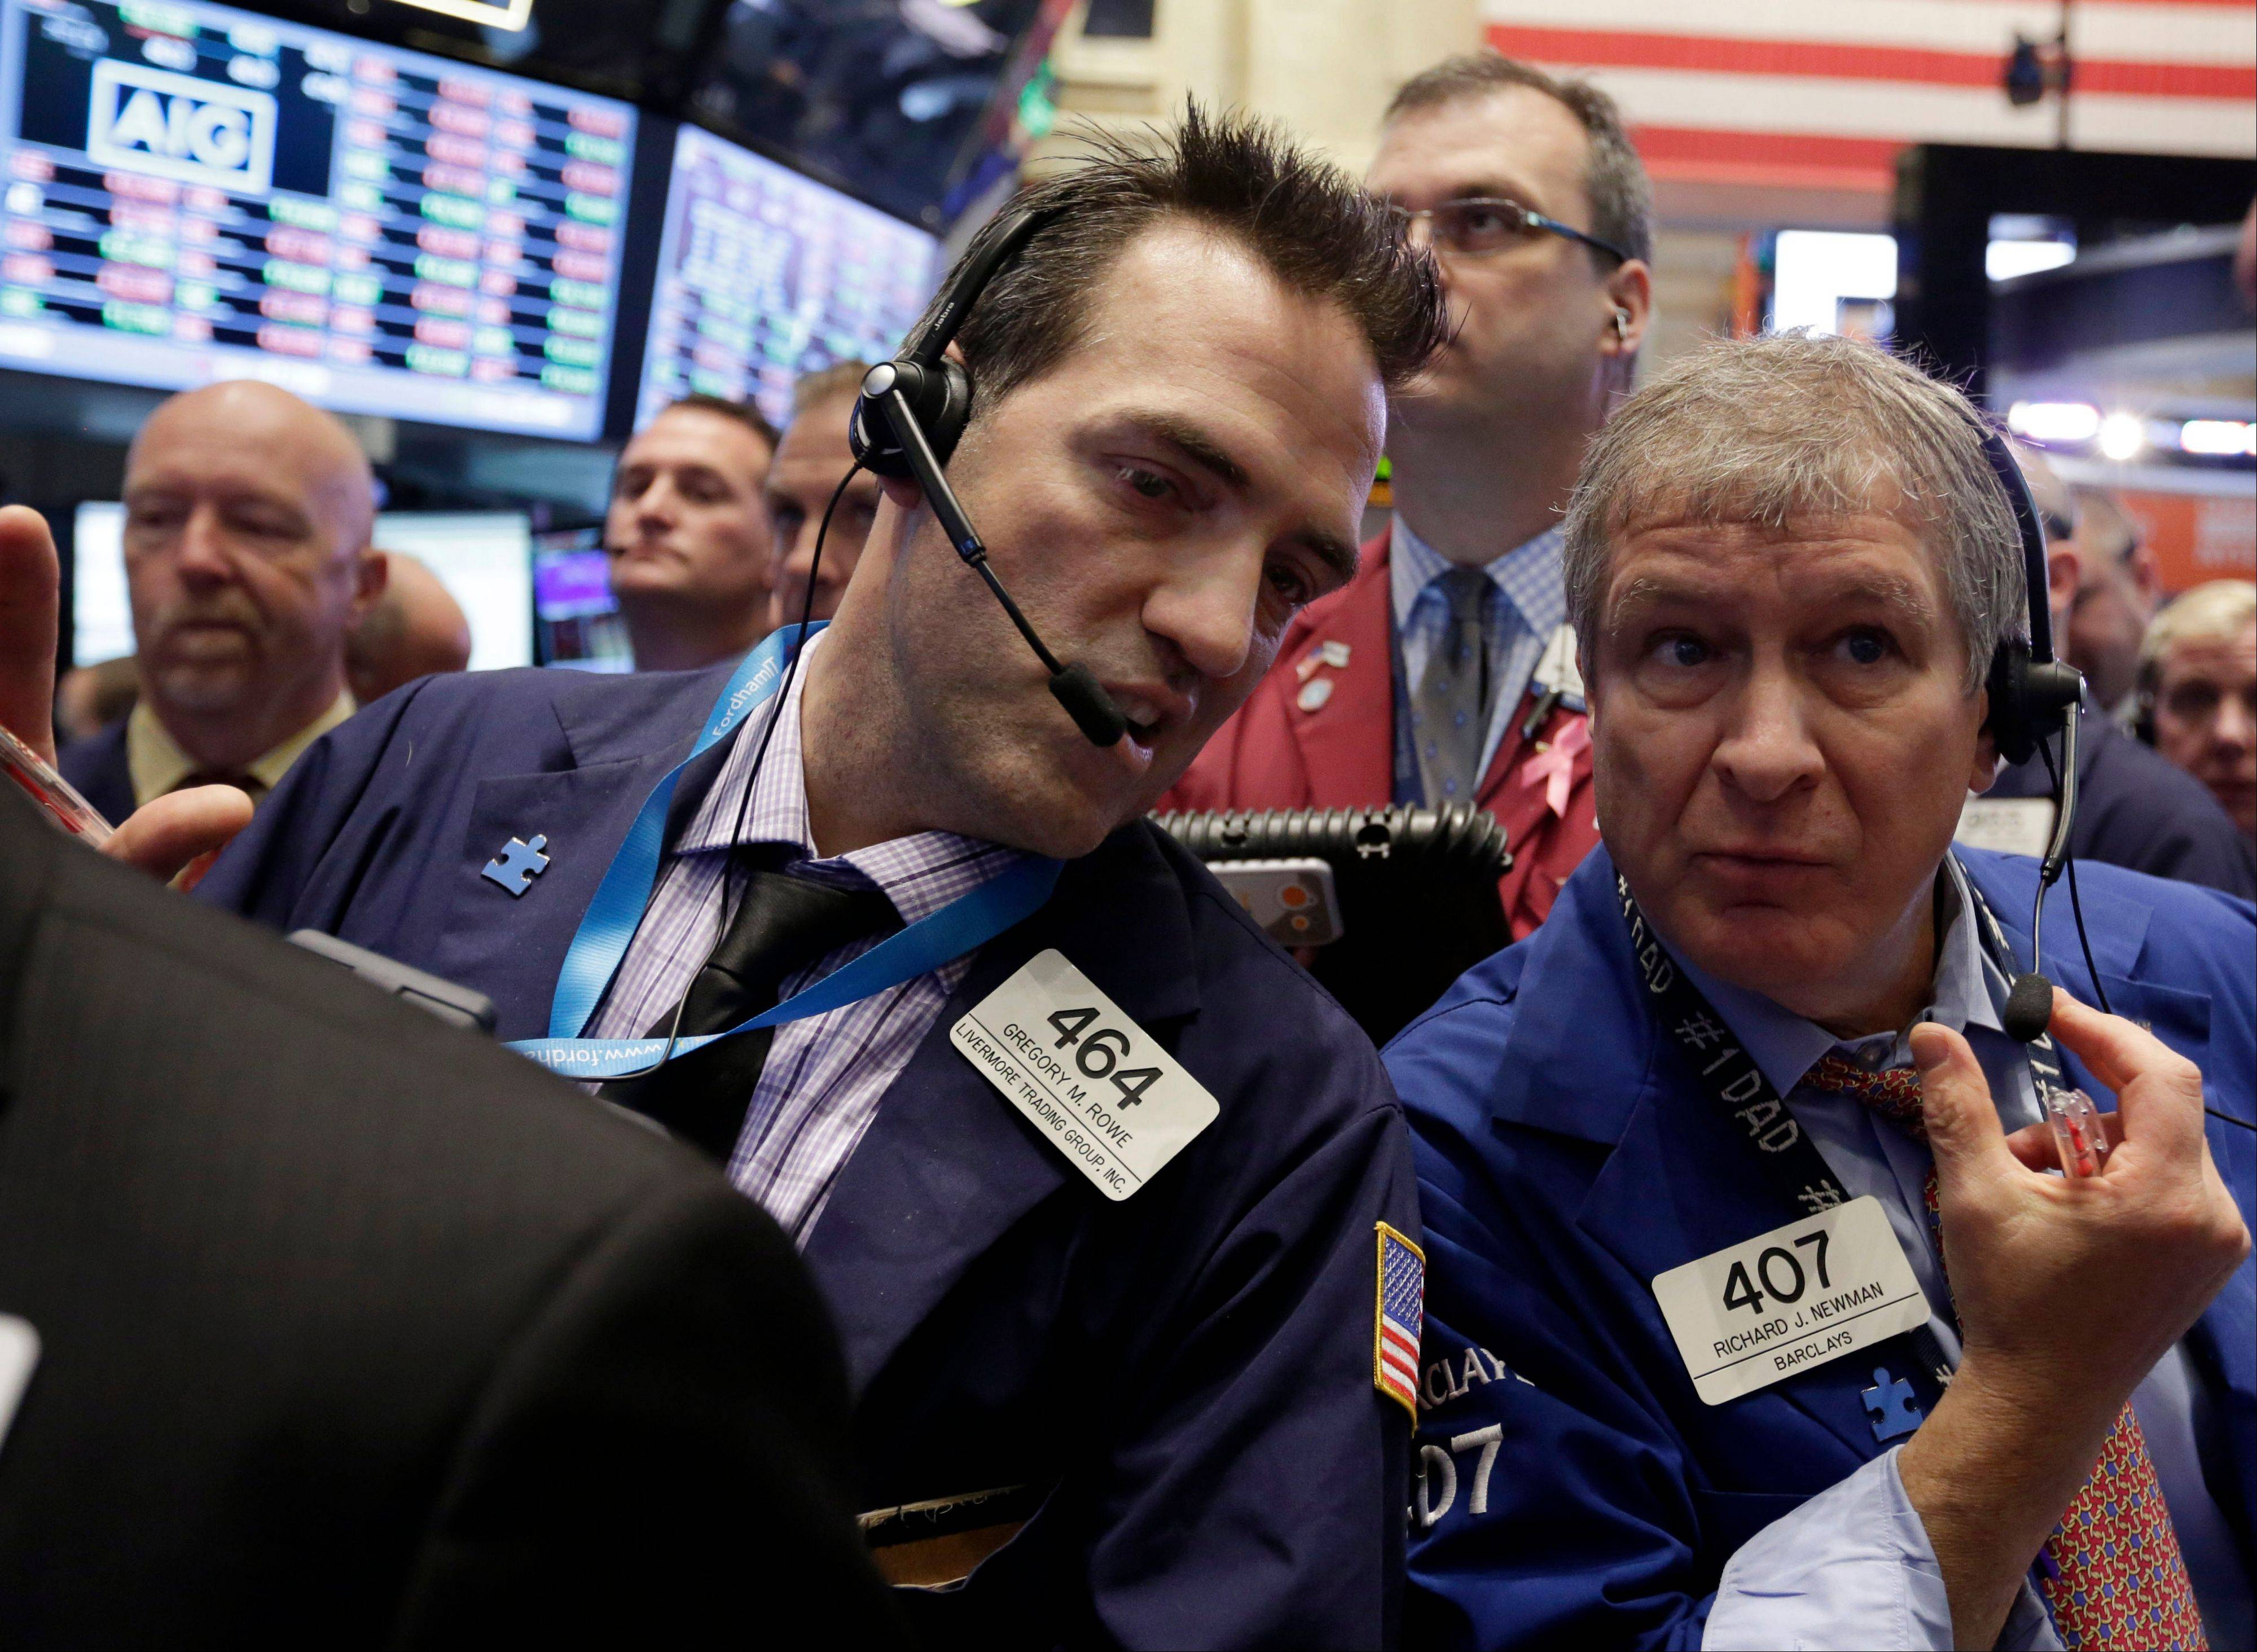 Traders Gregory Rowe, left, and Richard Newman confer on the floor of the New York Stock Exchange. World stock markets bounced higher Thursday after prepared testimony for the confirmation hearing of incoming Federal Reserve chief suggested the U.S. central bank won't reduce its economic stimulus until March next year or later.